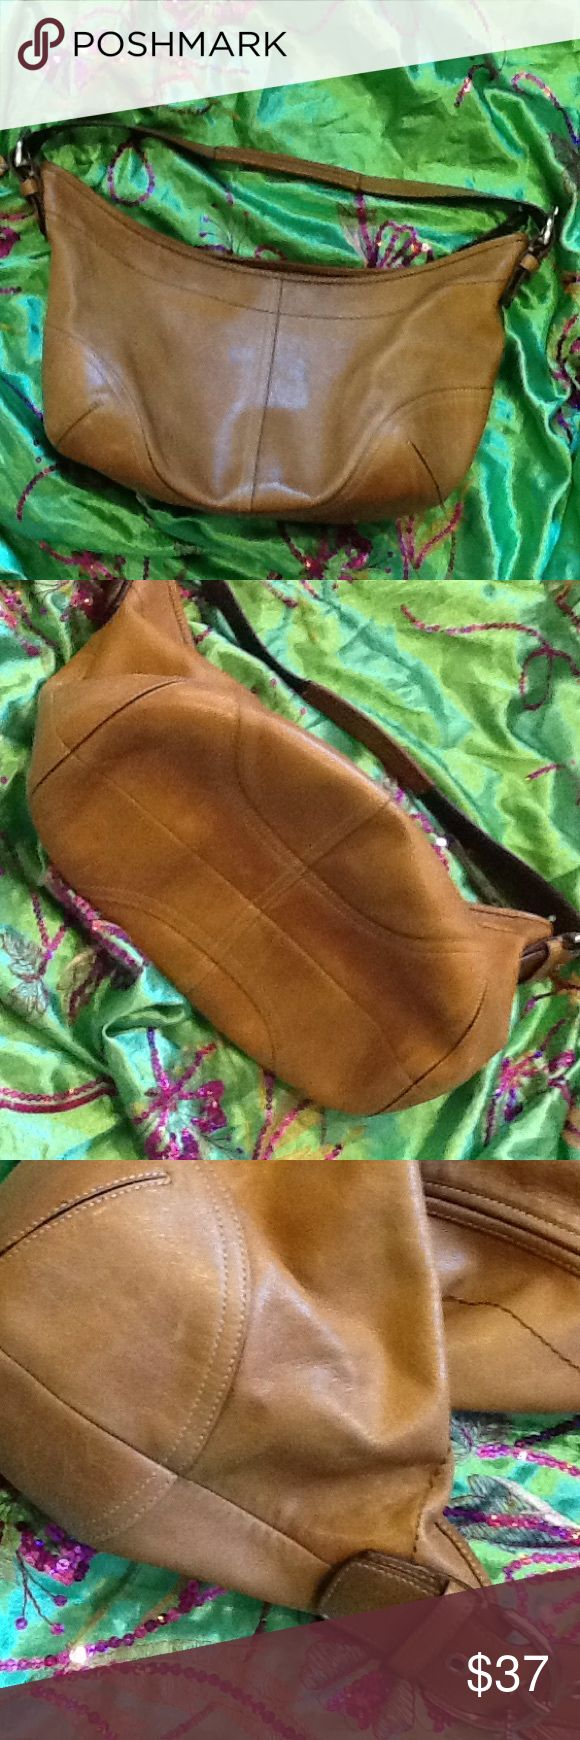 "Love me ""As Is"" Hobo shoulder bag, gently use on outside, pen stains inside see pic 4. Coach Bags Hobos"